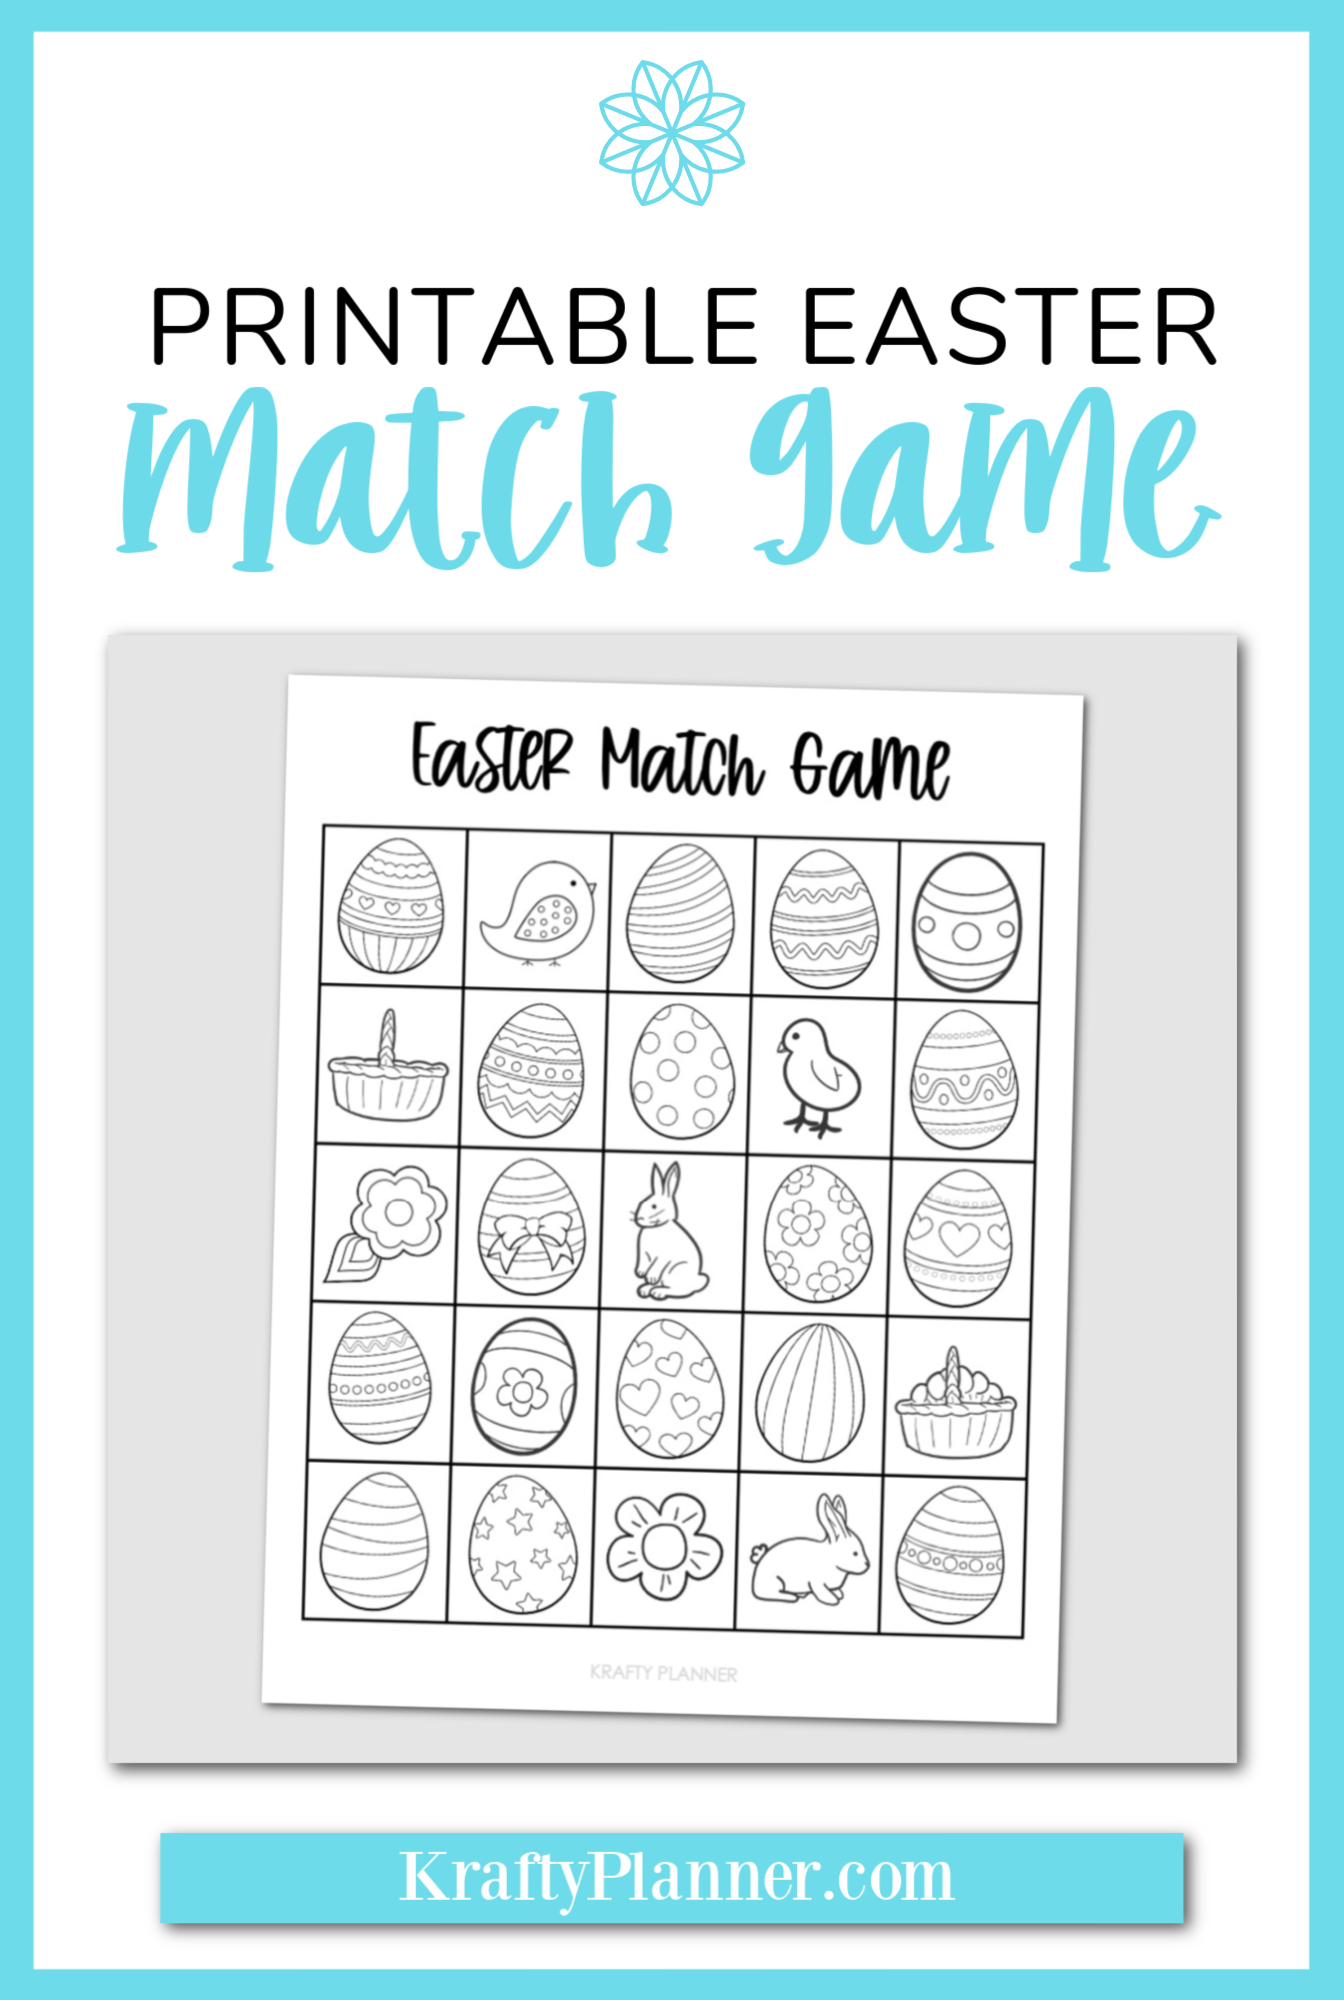 Easter Match Game PIN 2.png